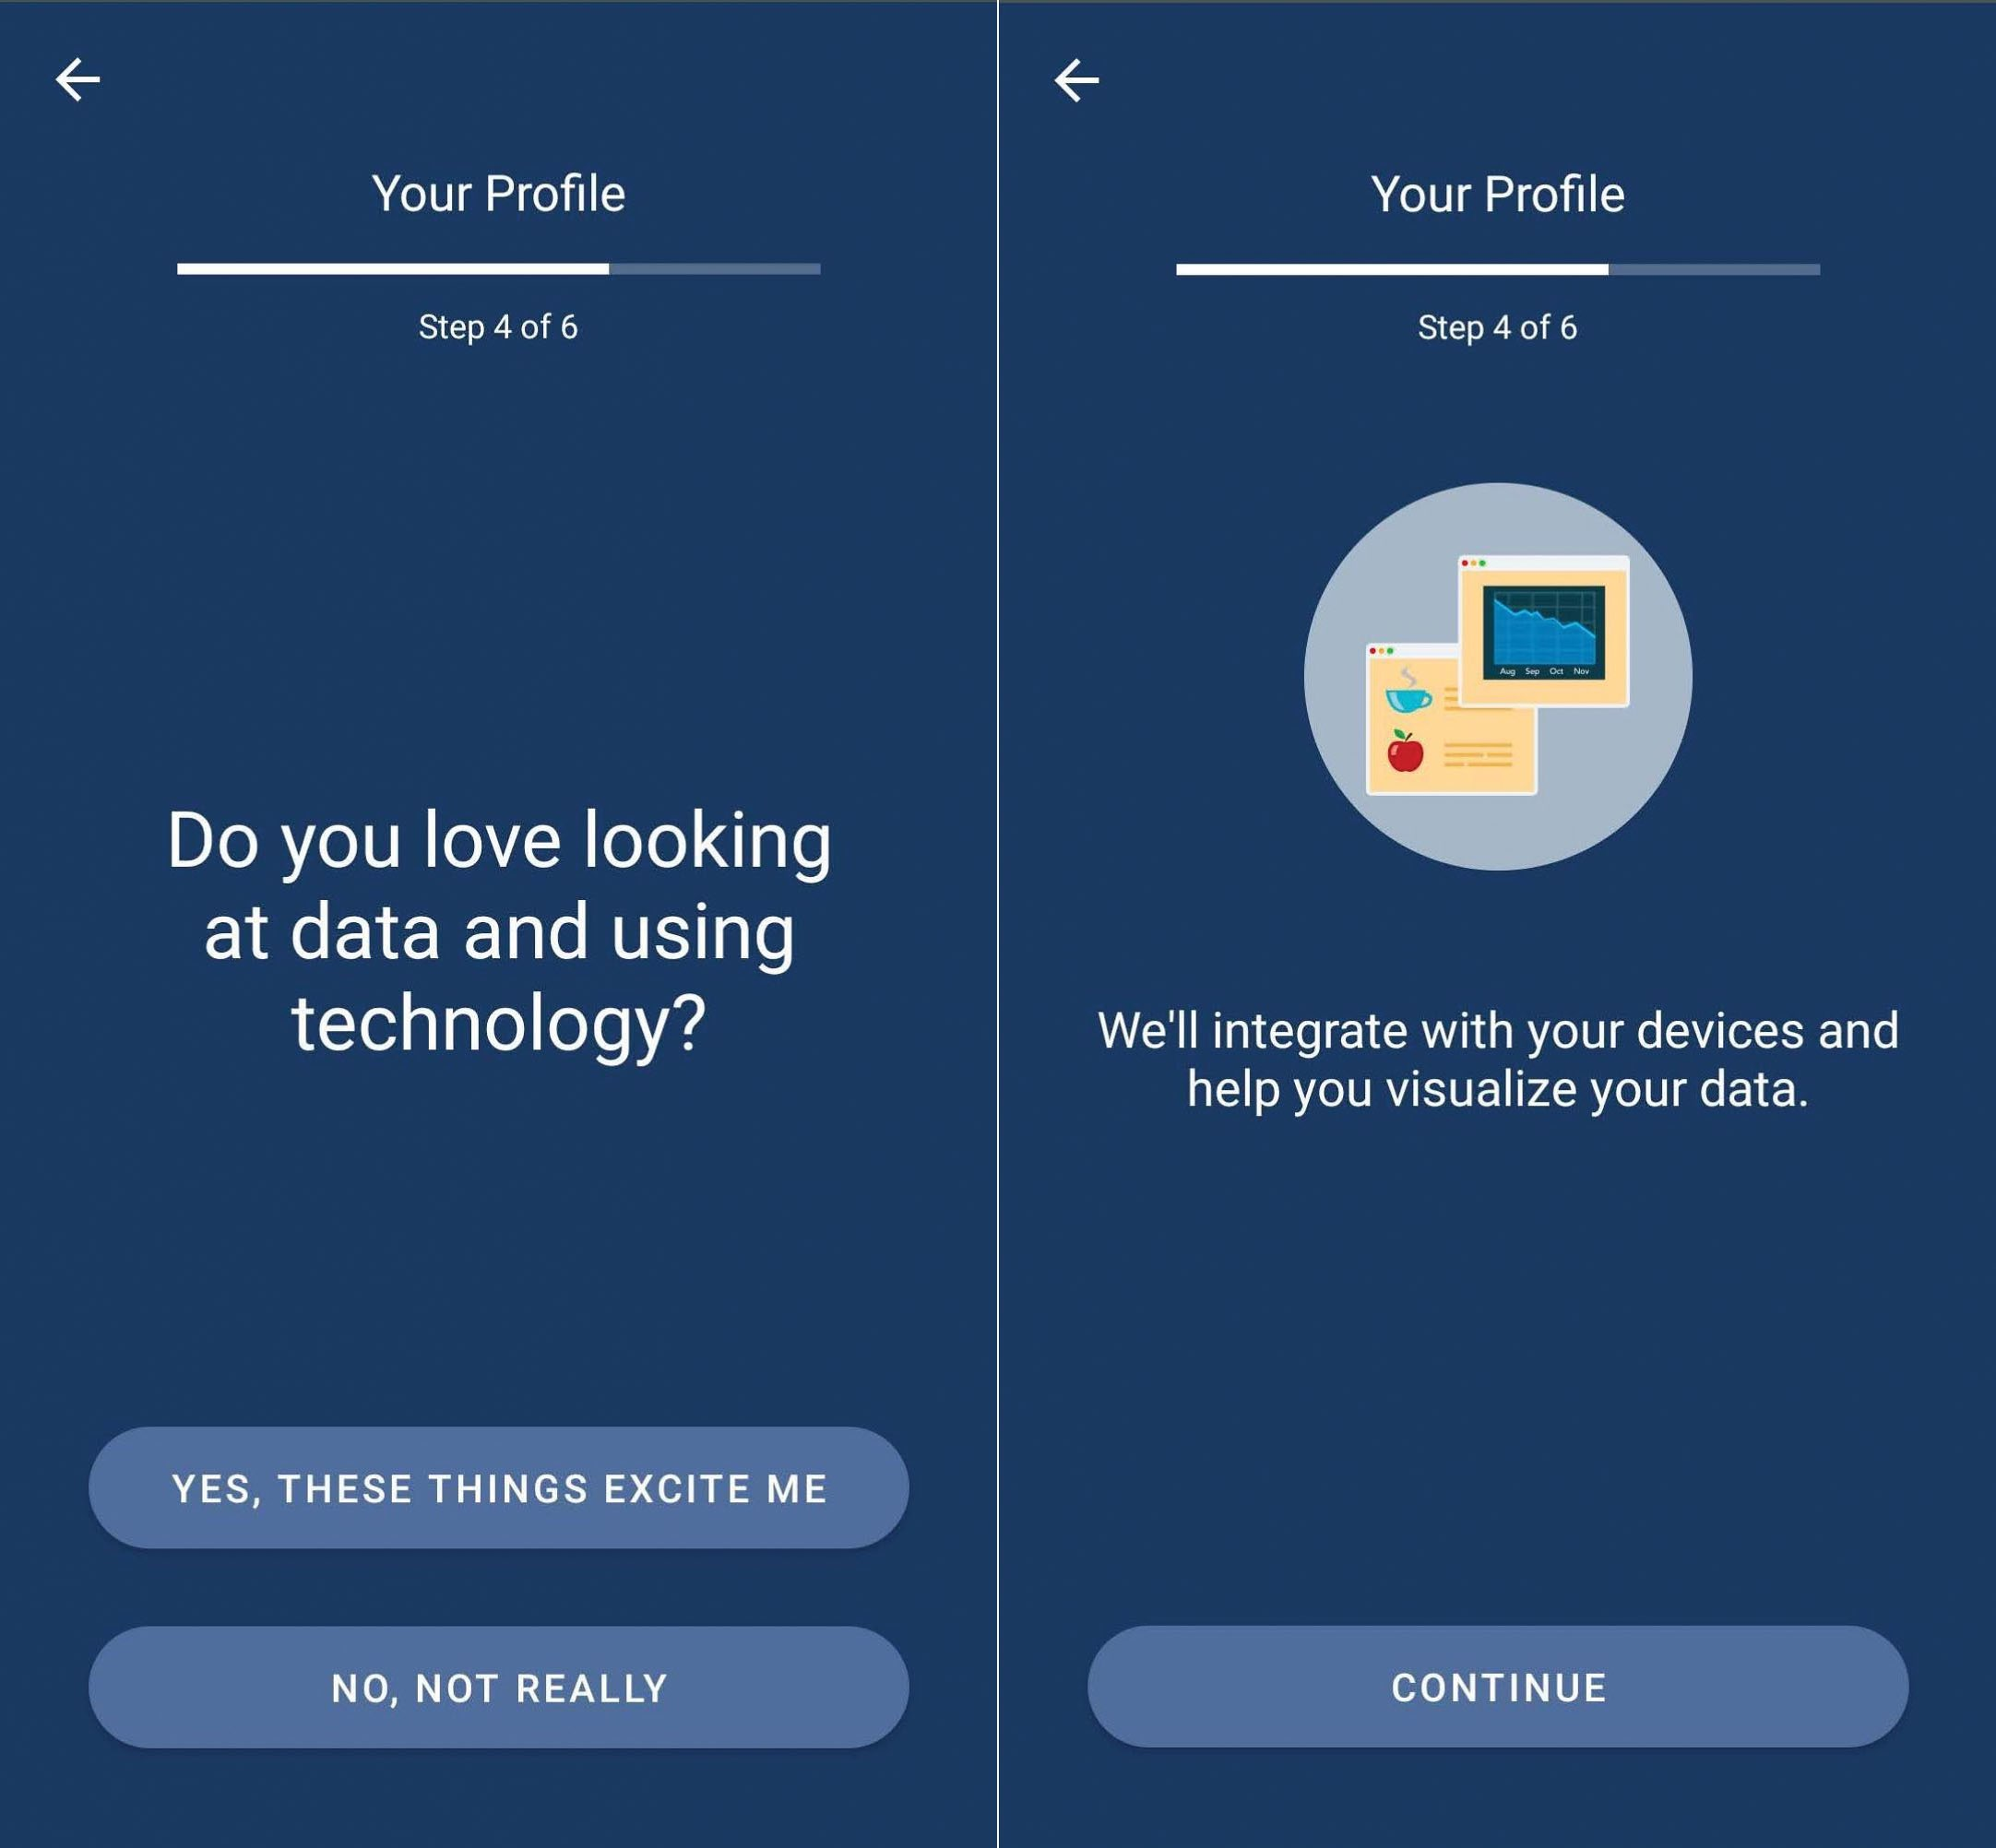 Screenshots of the LoseIt app showing it asking whether a user enjoys looking at data and using technology then acknowledging their choice.